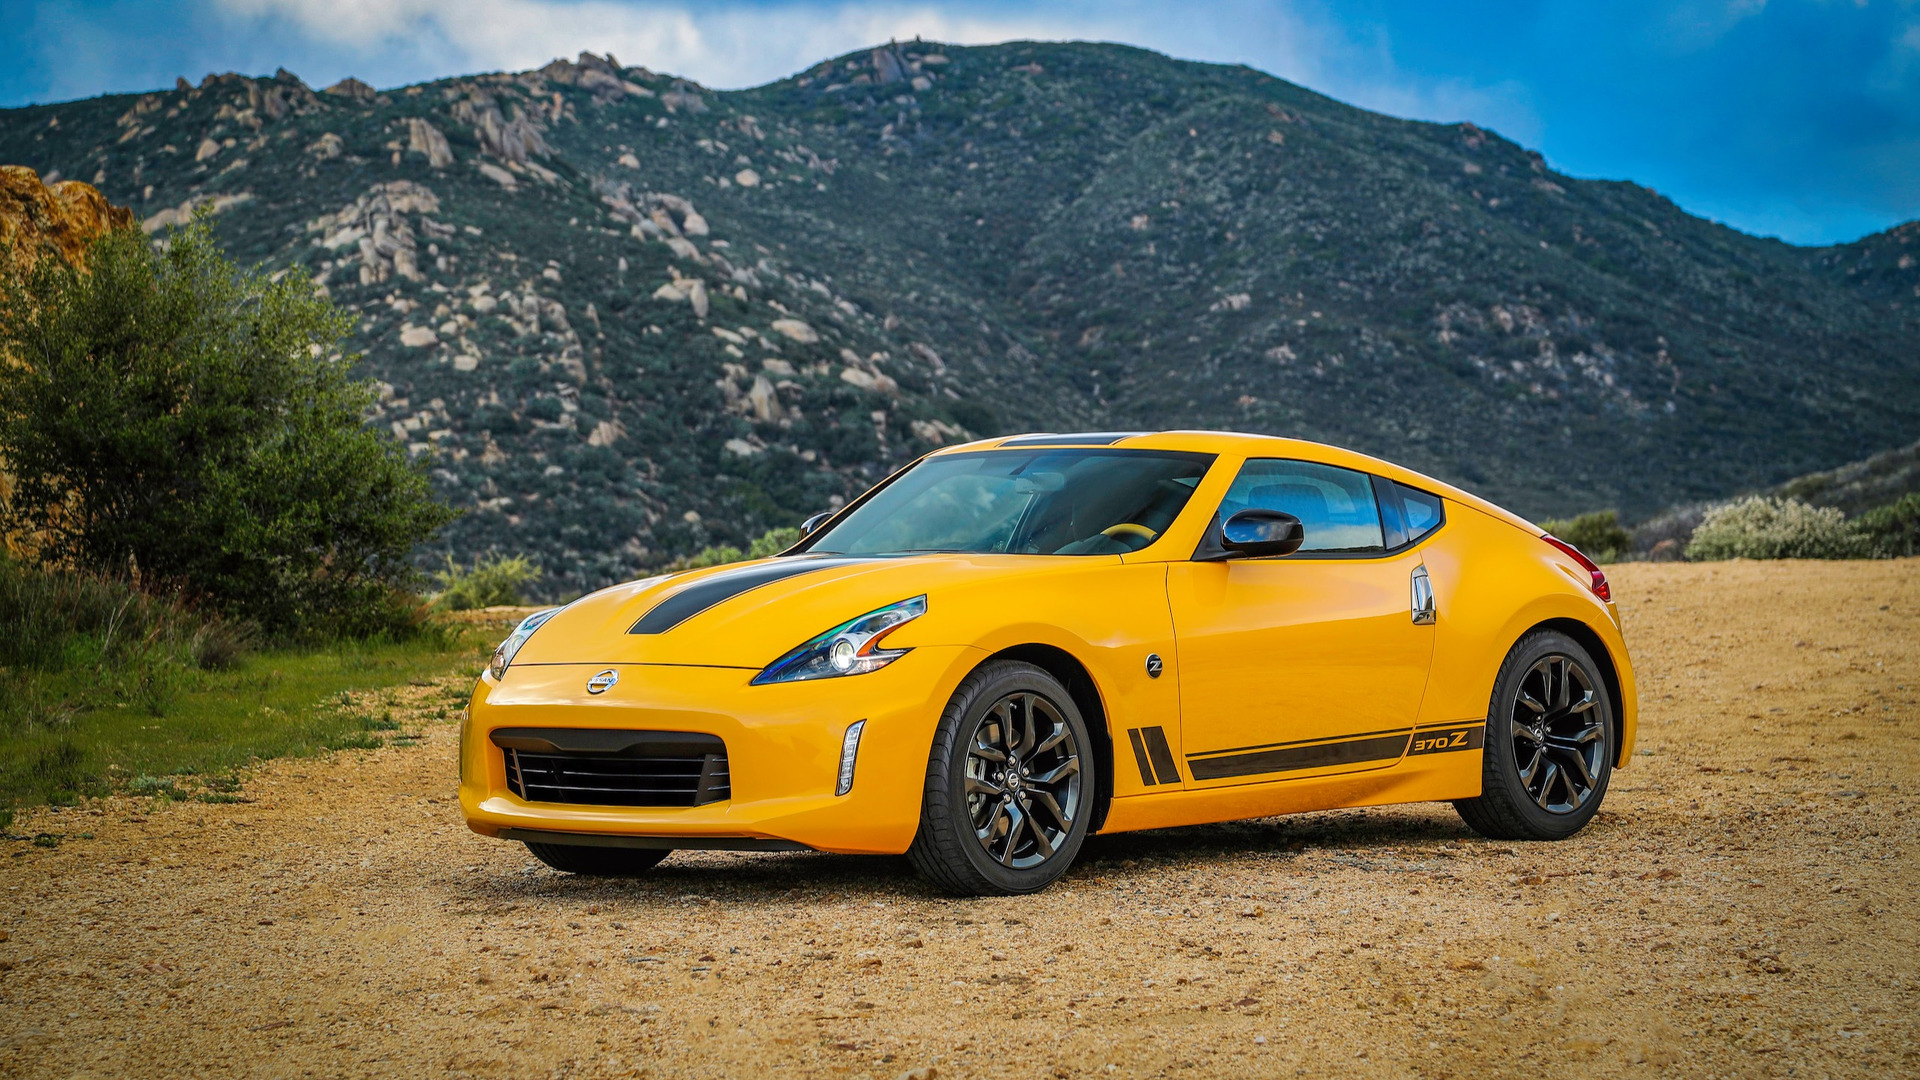 Rumored Nissan 370z Nismo Replacement Could Pack 475 Hp V6 Awd